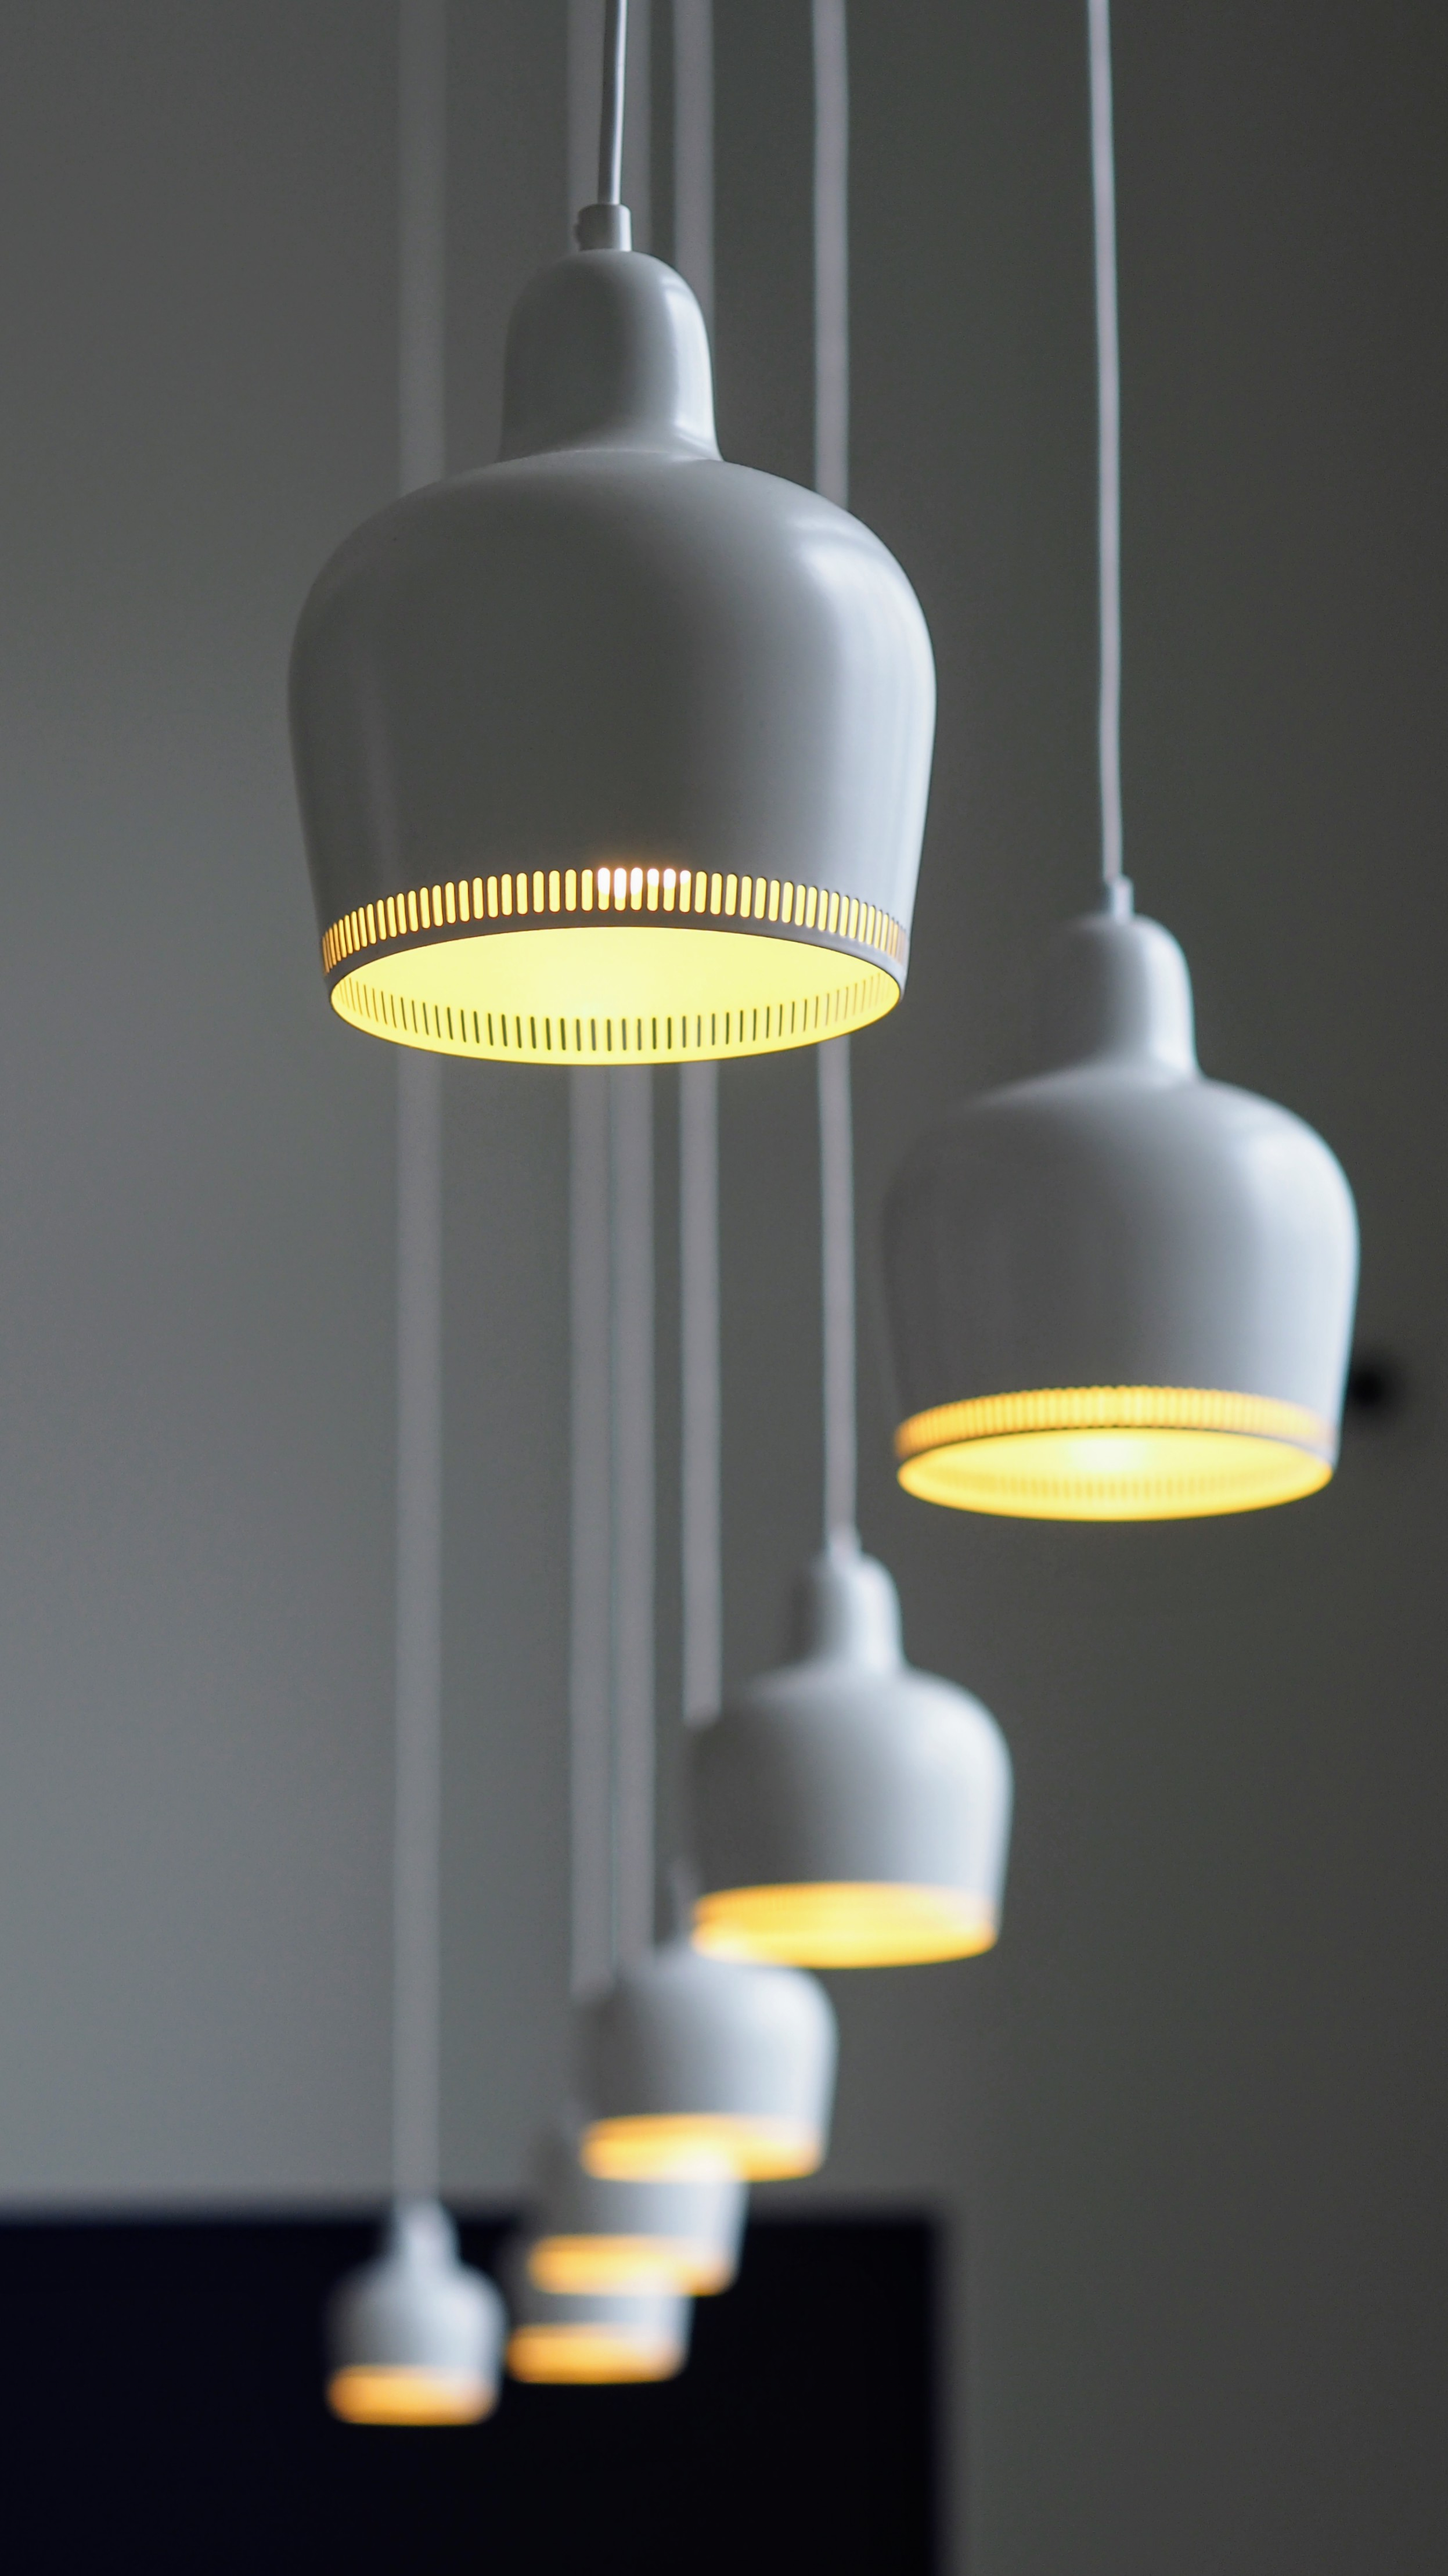 lighting for pictures. White Porcelain Lamps Hanging From A Ceiling On Long Wires Lighting For Pictures N